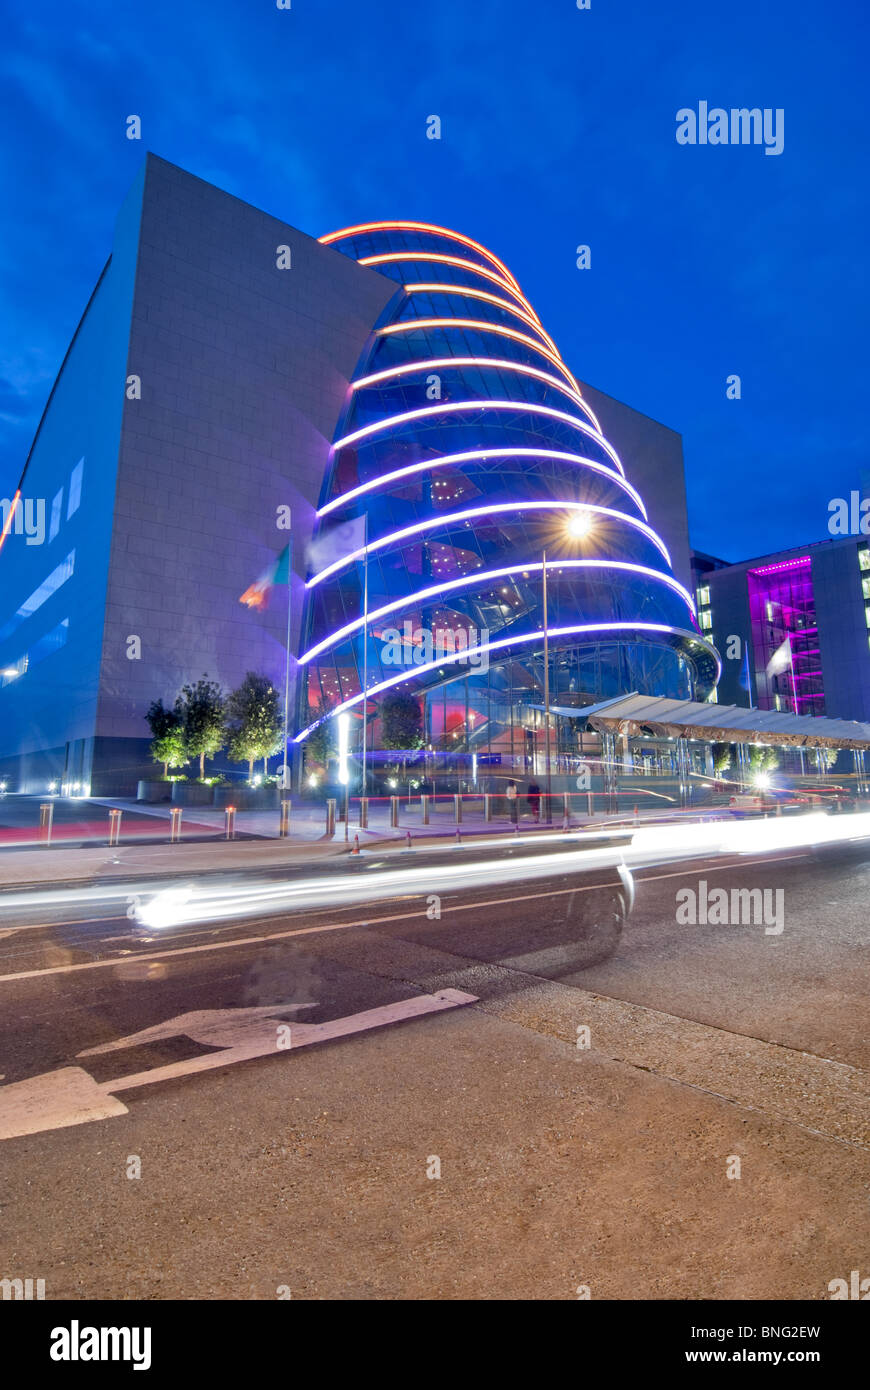 Night time view of the Convention Center in Dublin, Ireland - Stock Image